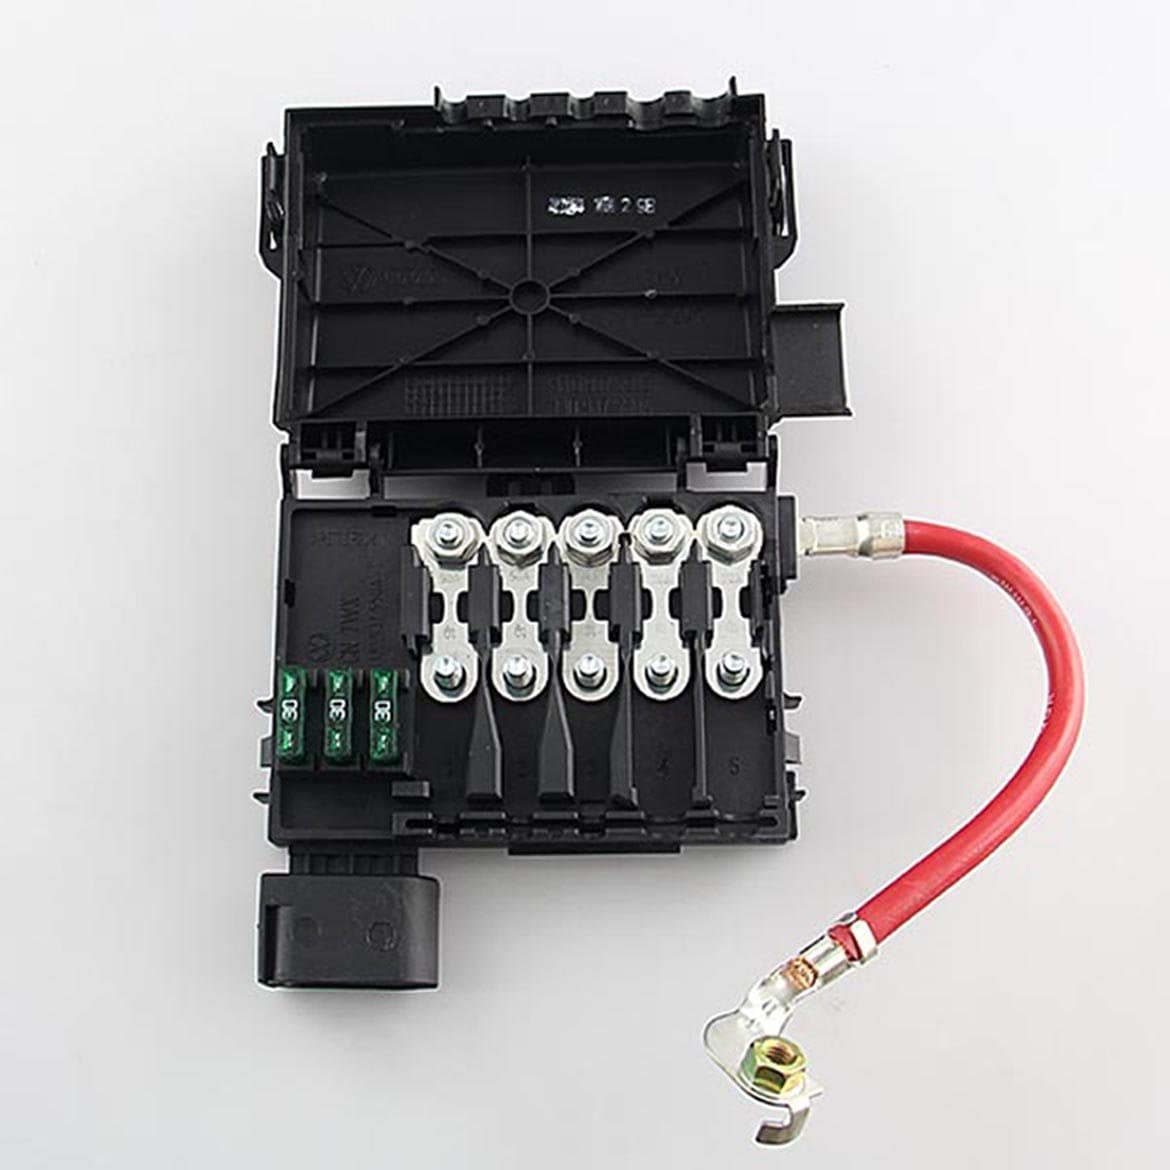 Amazon.com: Fuse Box Battery Terminal Fit For VW Jetta Golf MK4 Beetle 2.0  1.9TDI 1J0937617D: Car ElectronicsAmazon.com